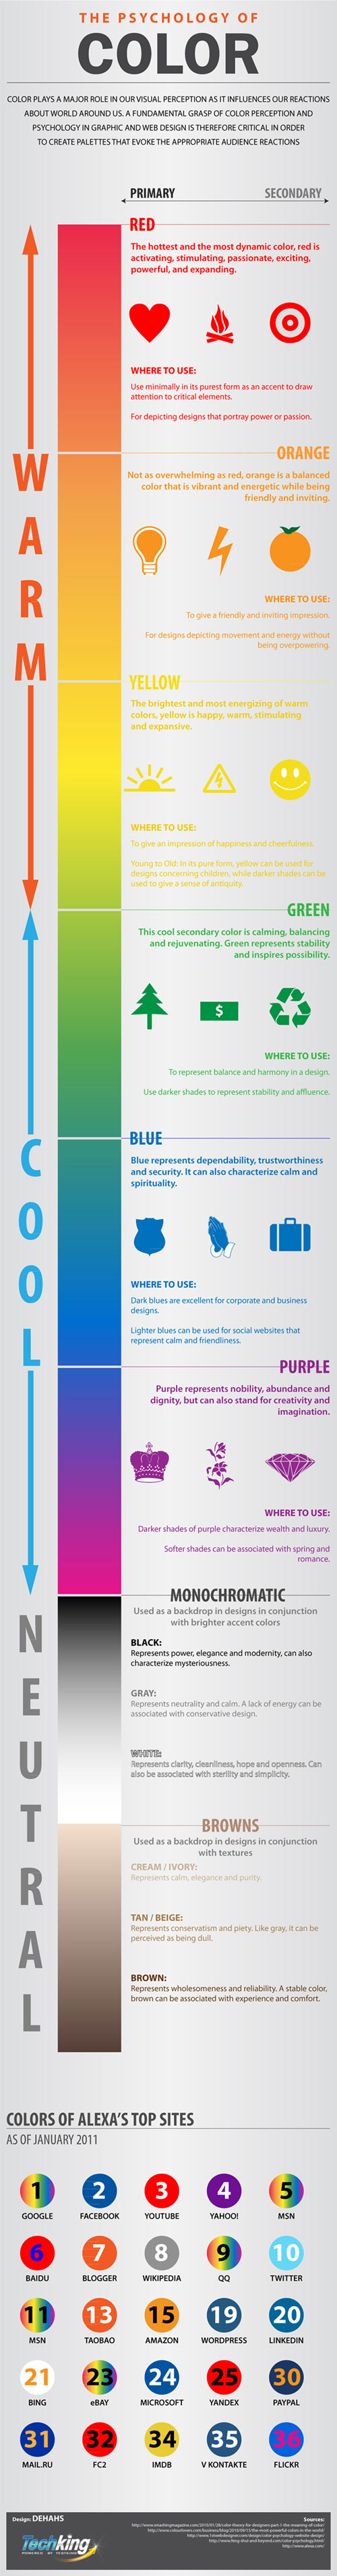 psychology-of-colour.jpg